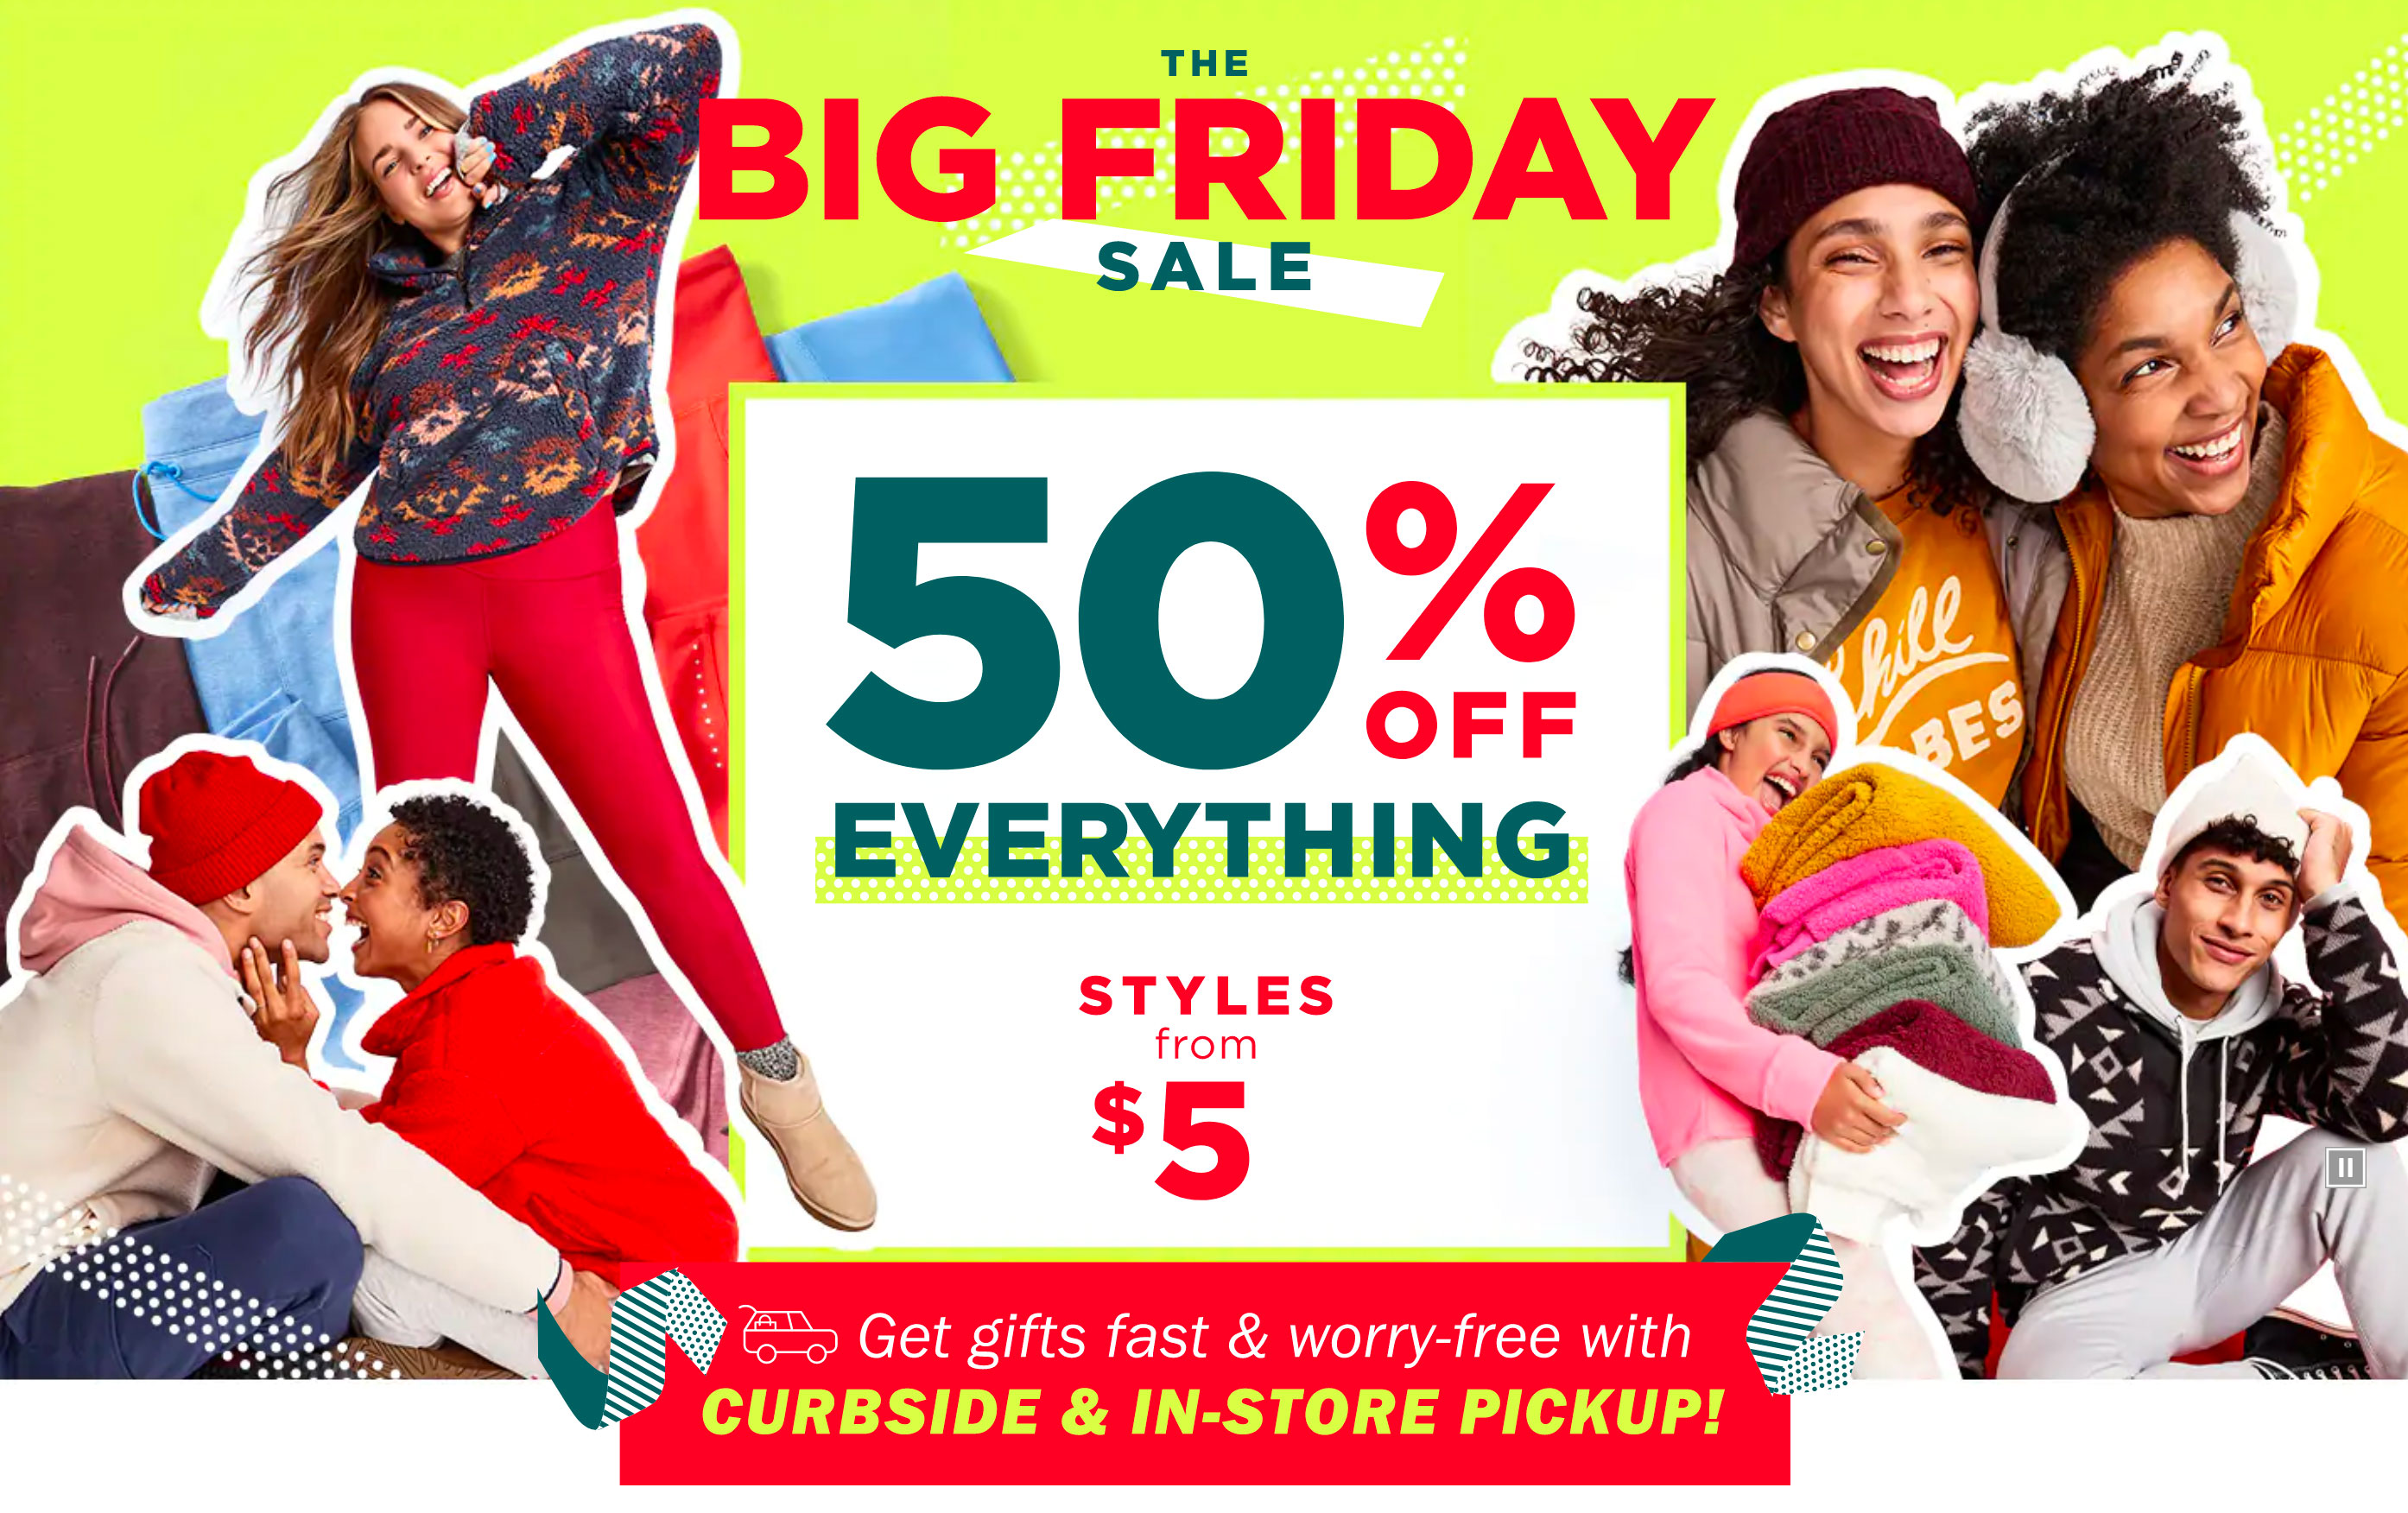 Old Navy Black Friday 2018 Deals and Ad Scan